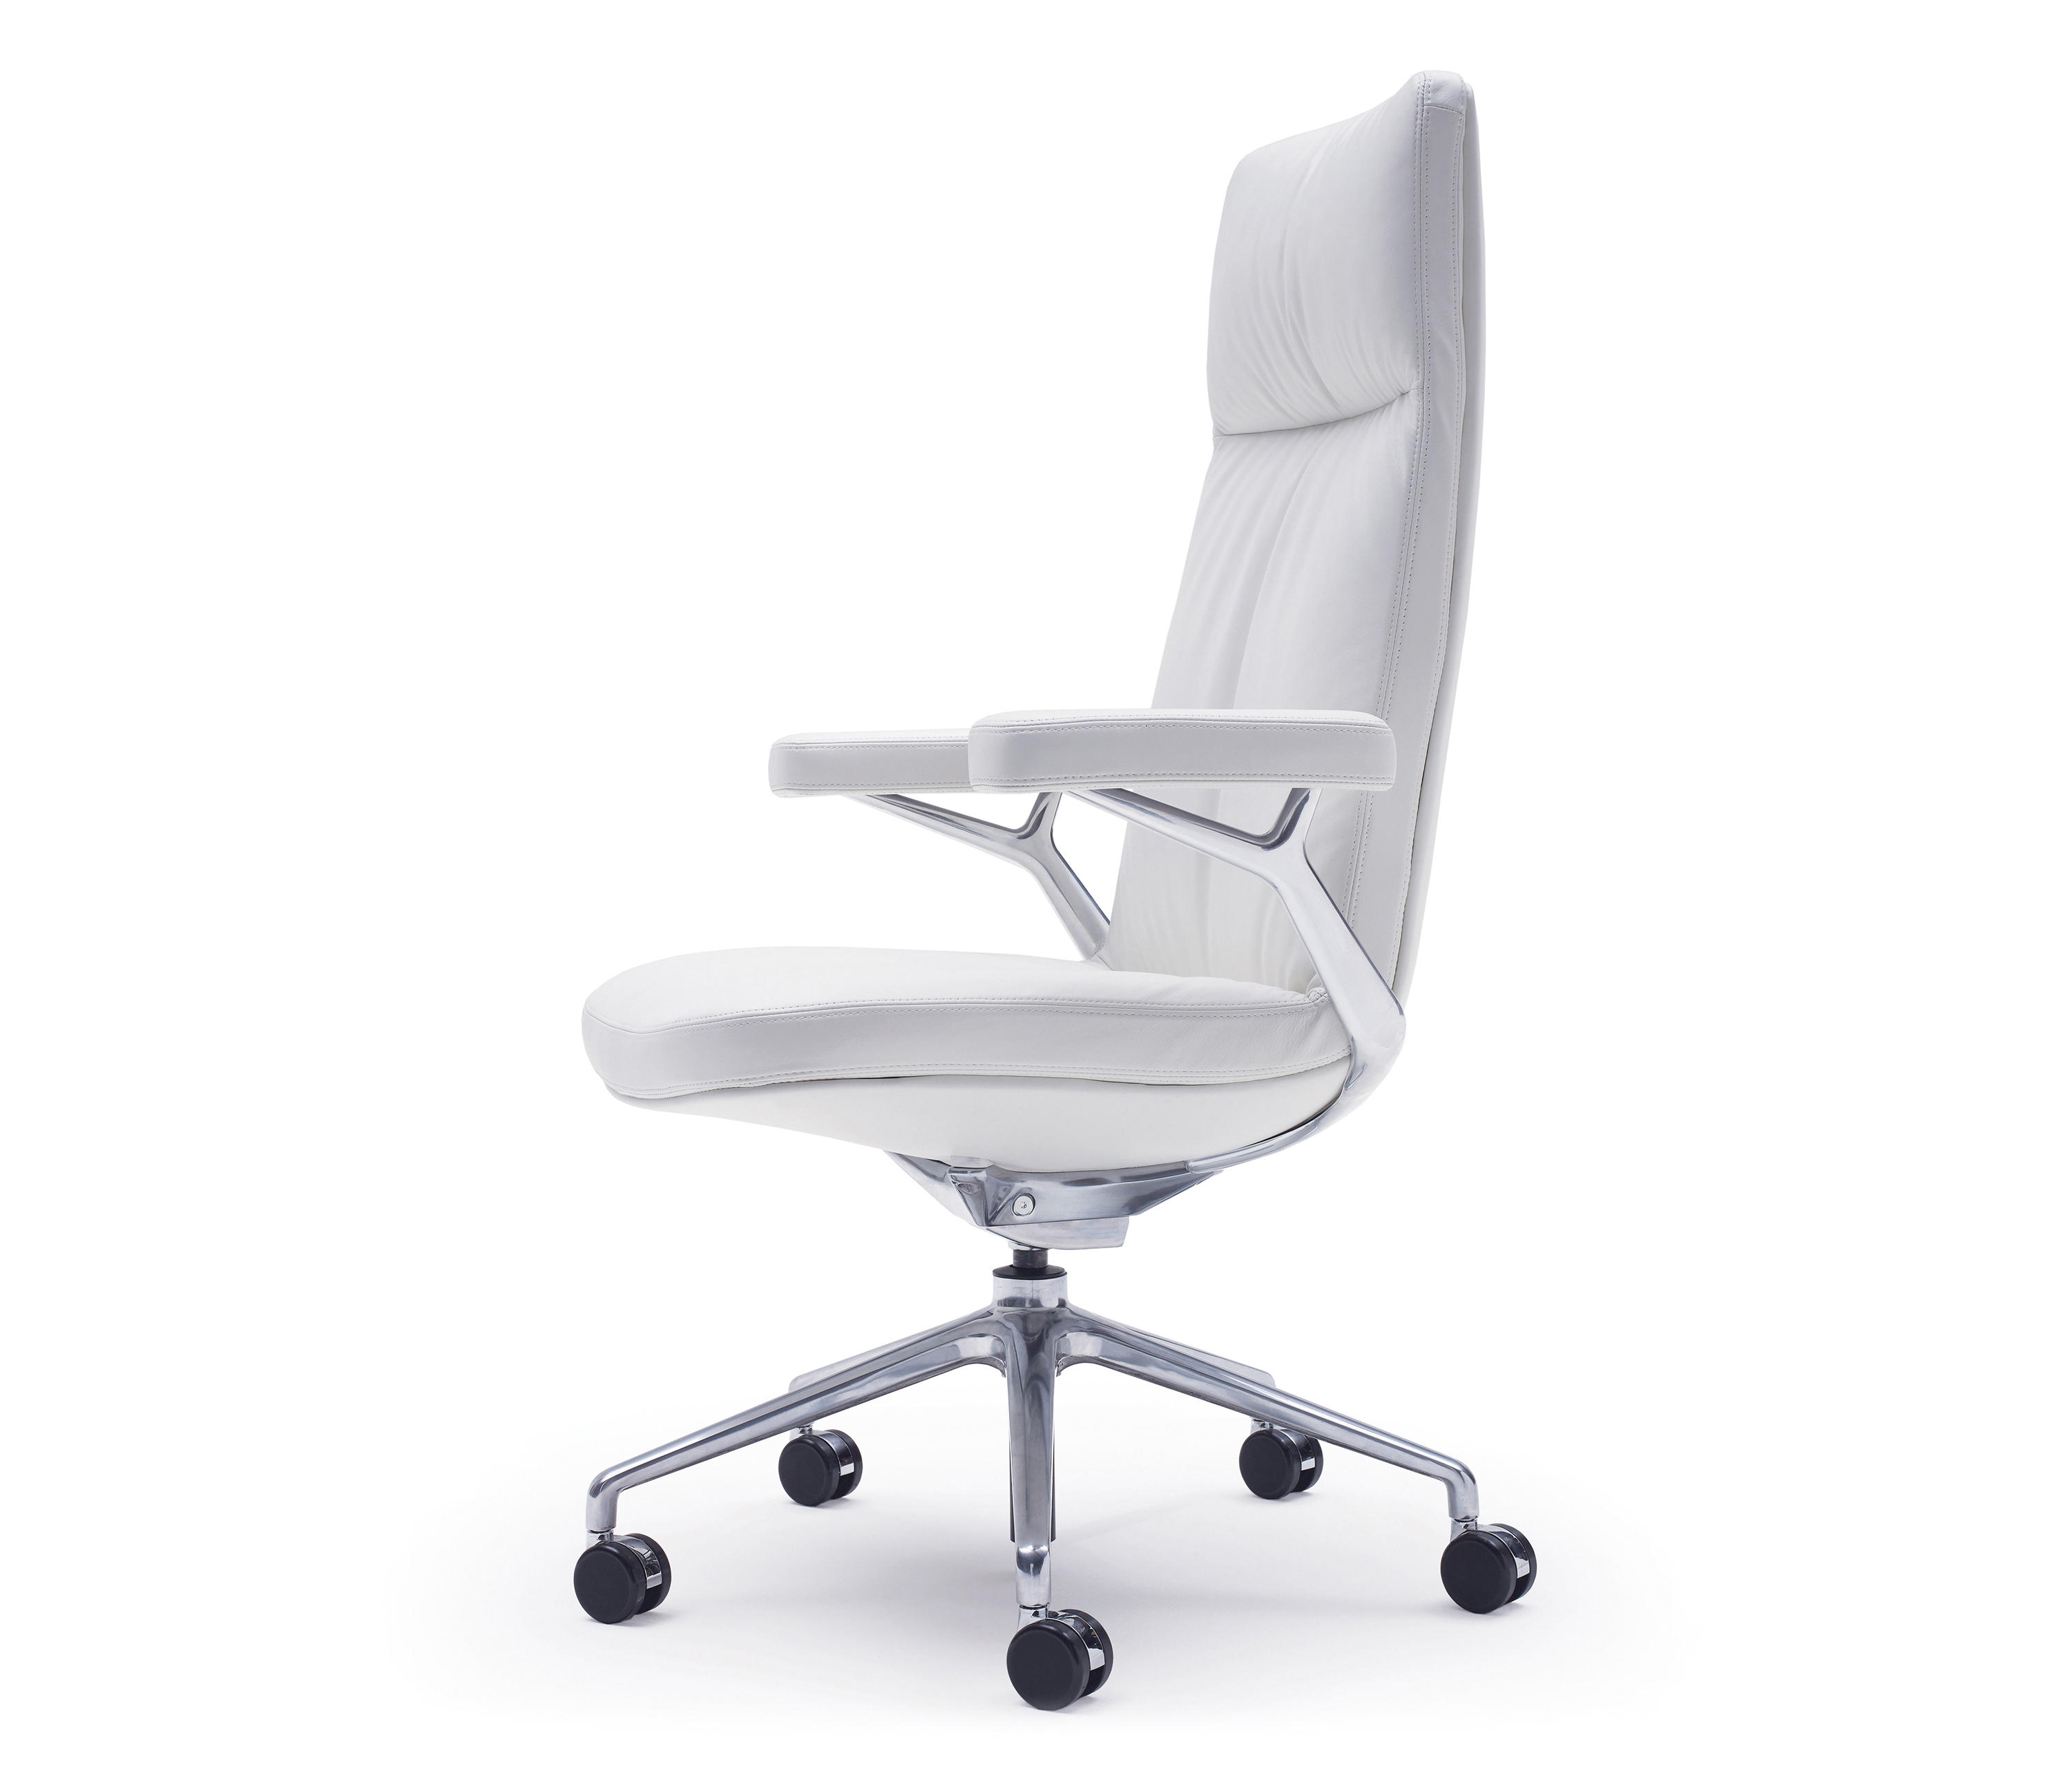 Cloud Office Chairs From Davis Furniture Architonic